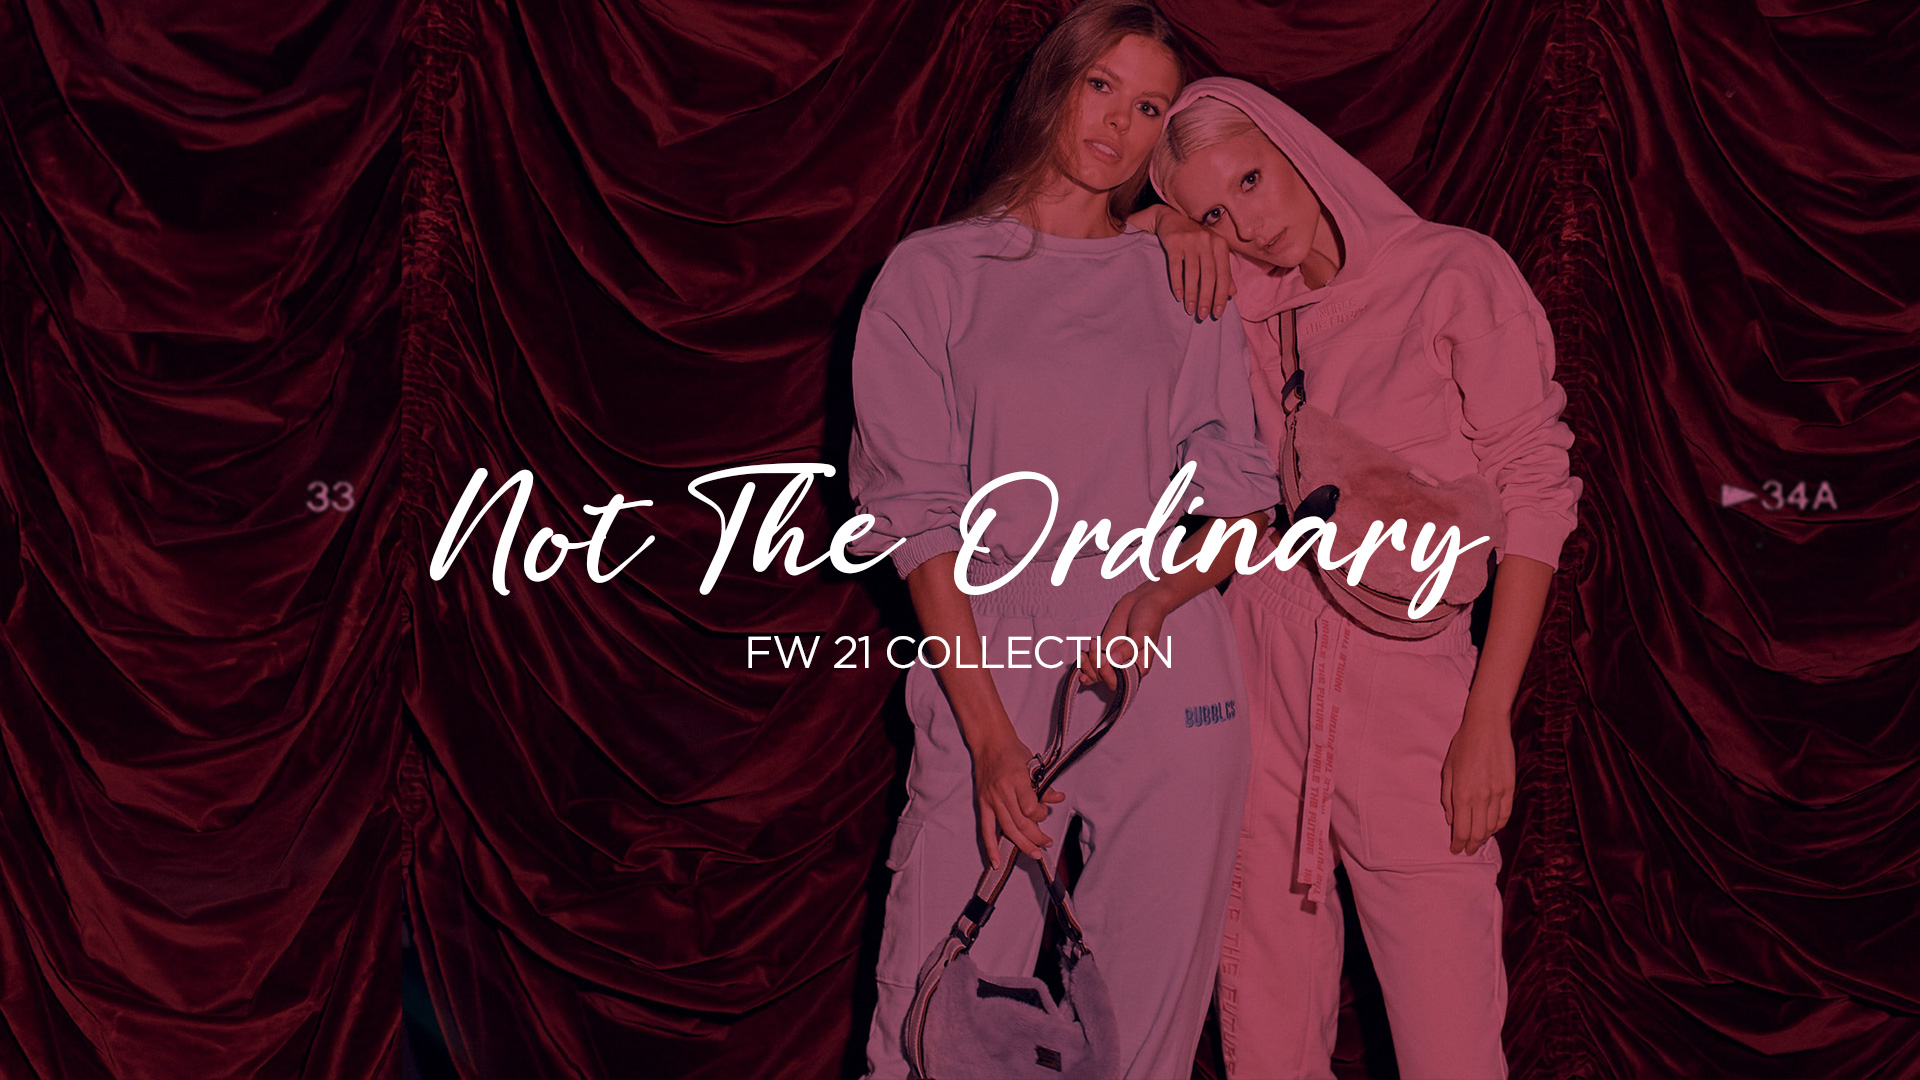 not the ordinary | fw21 collection | elena athanasiou bags